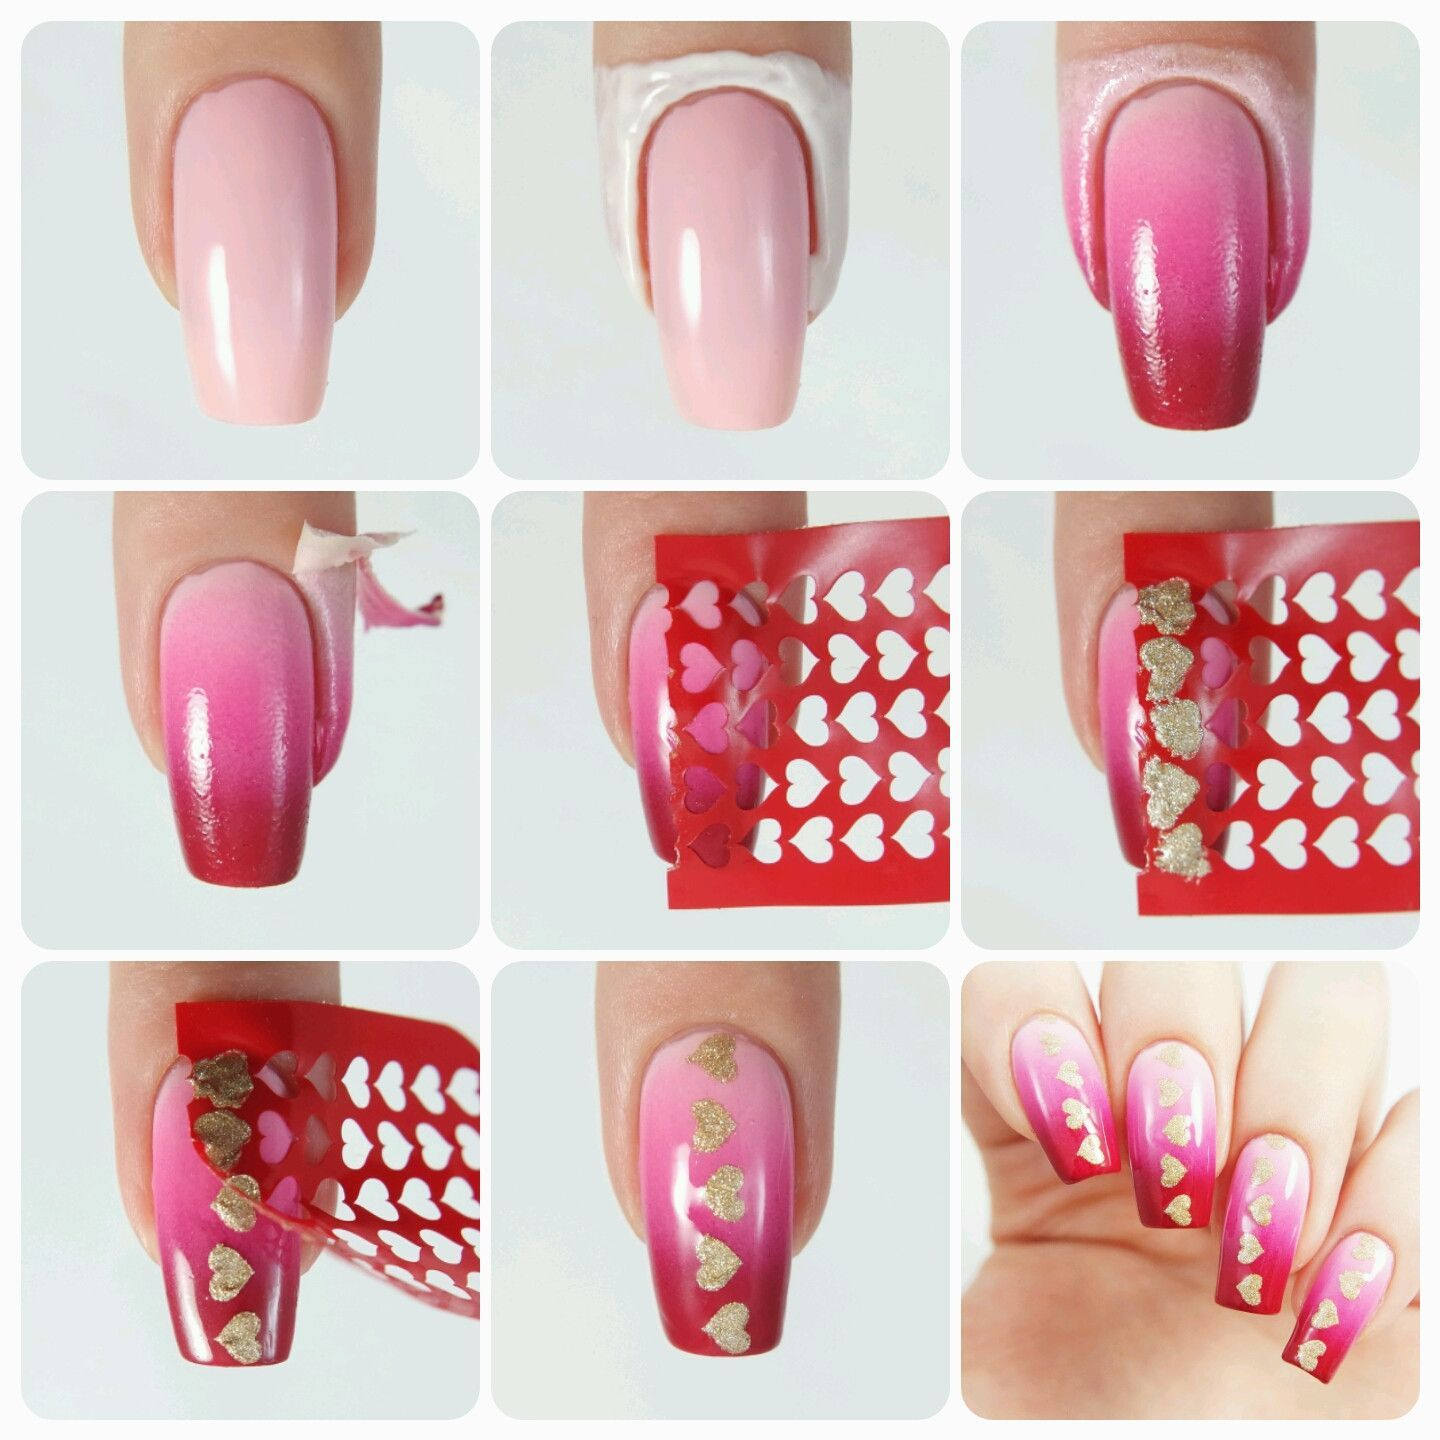 Create Lovely Nails With These Fun Heart Nail Stencils Patterns Go Every Season And Work Any Color Combinations You Paint Ombré On